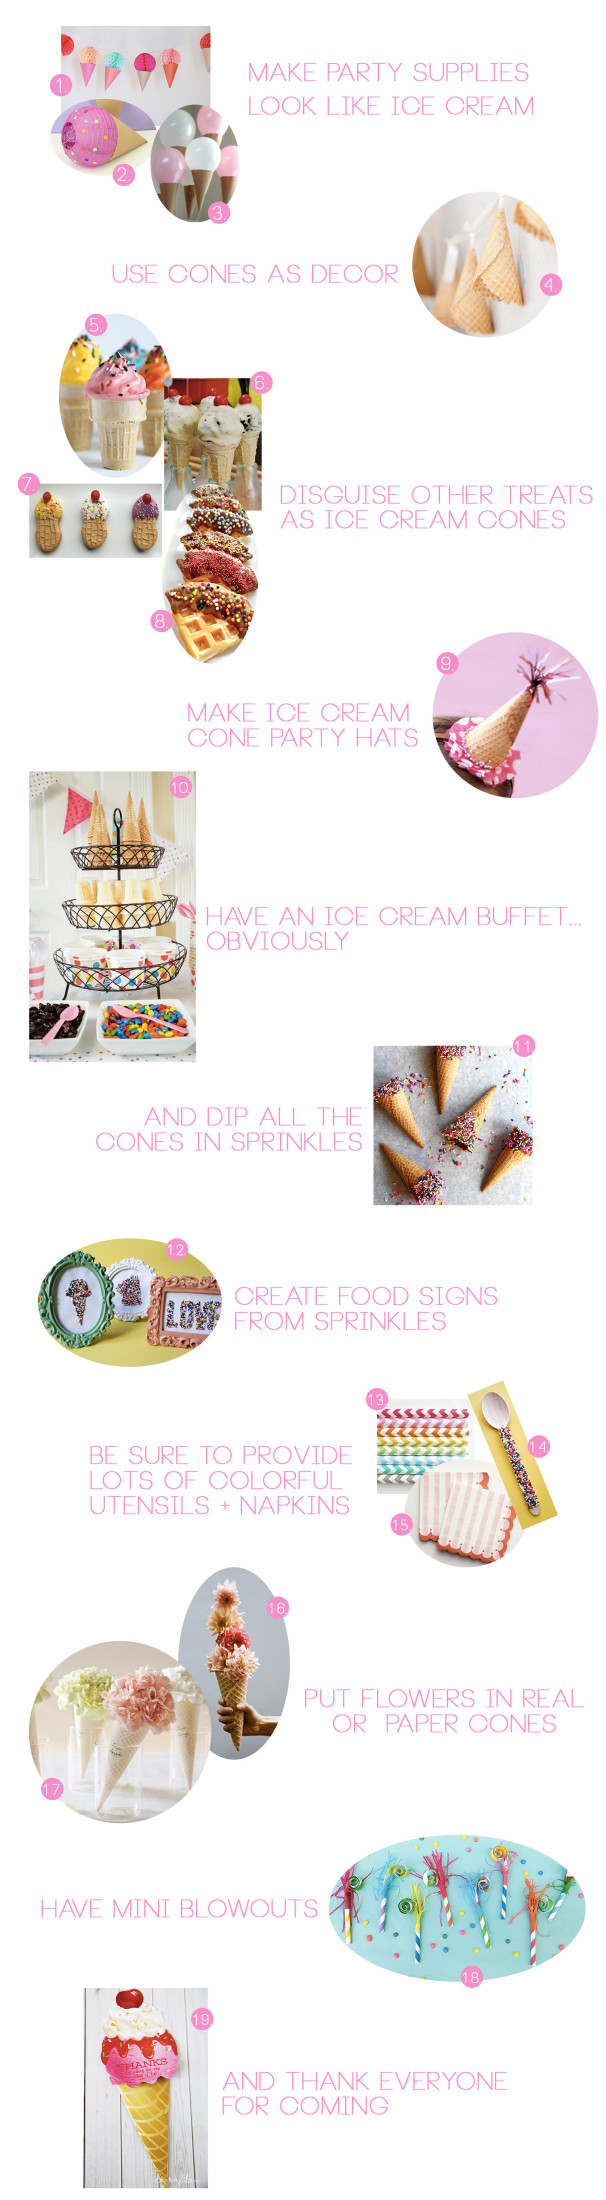 Ice Cream Party Inspiration and Ideas. Crafts, Food, Decor and Favors @ajoyfulriot